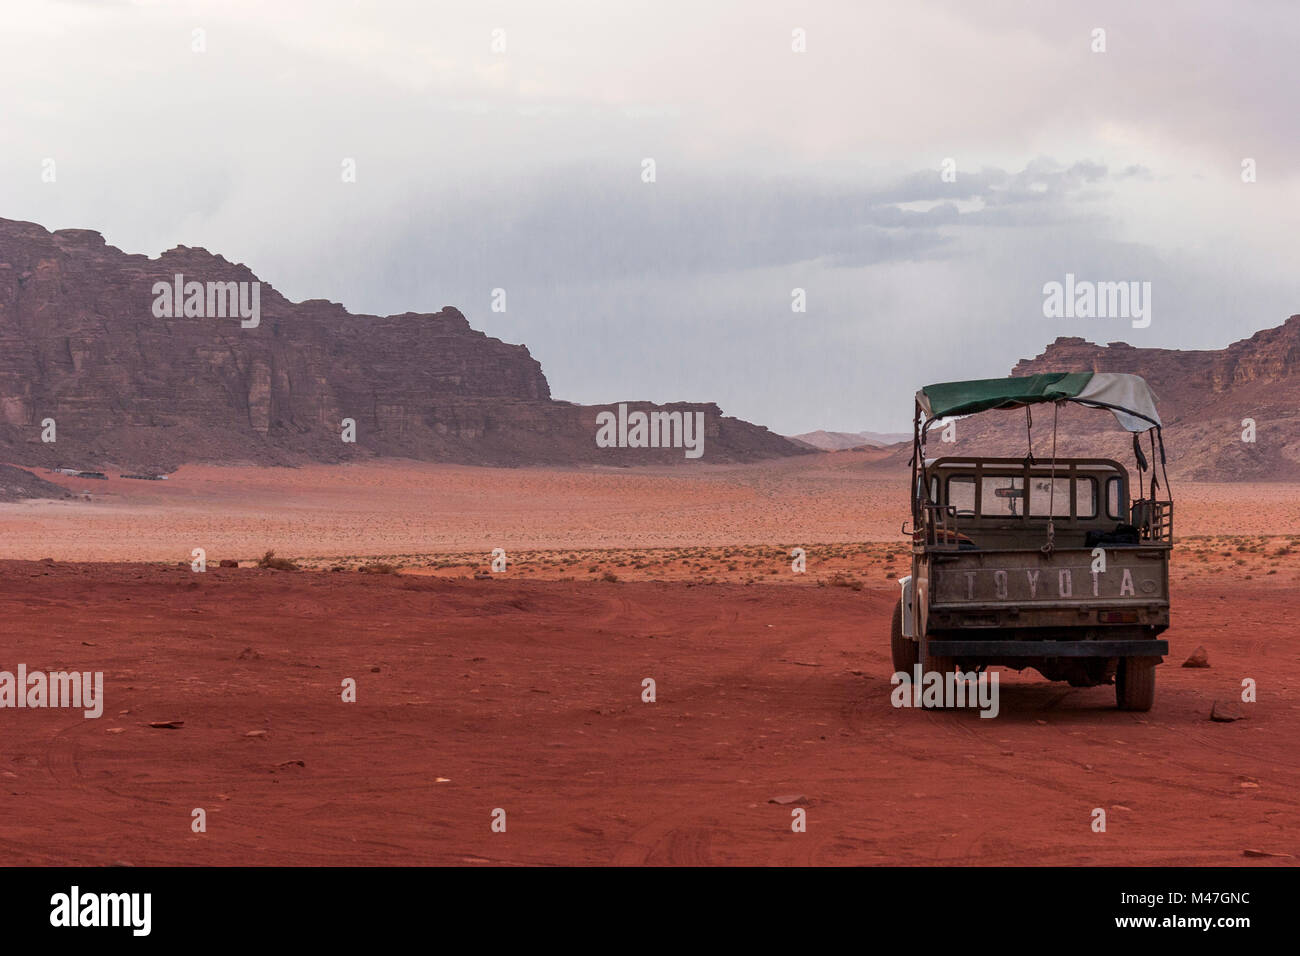 Wadi Rum desert, a valley cut into the sandstone and granite rock - Stock Image